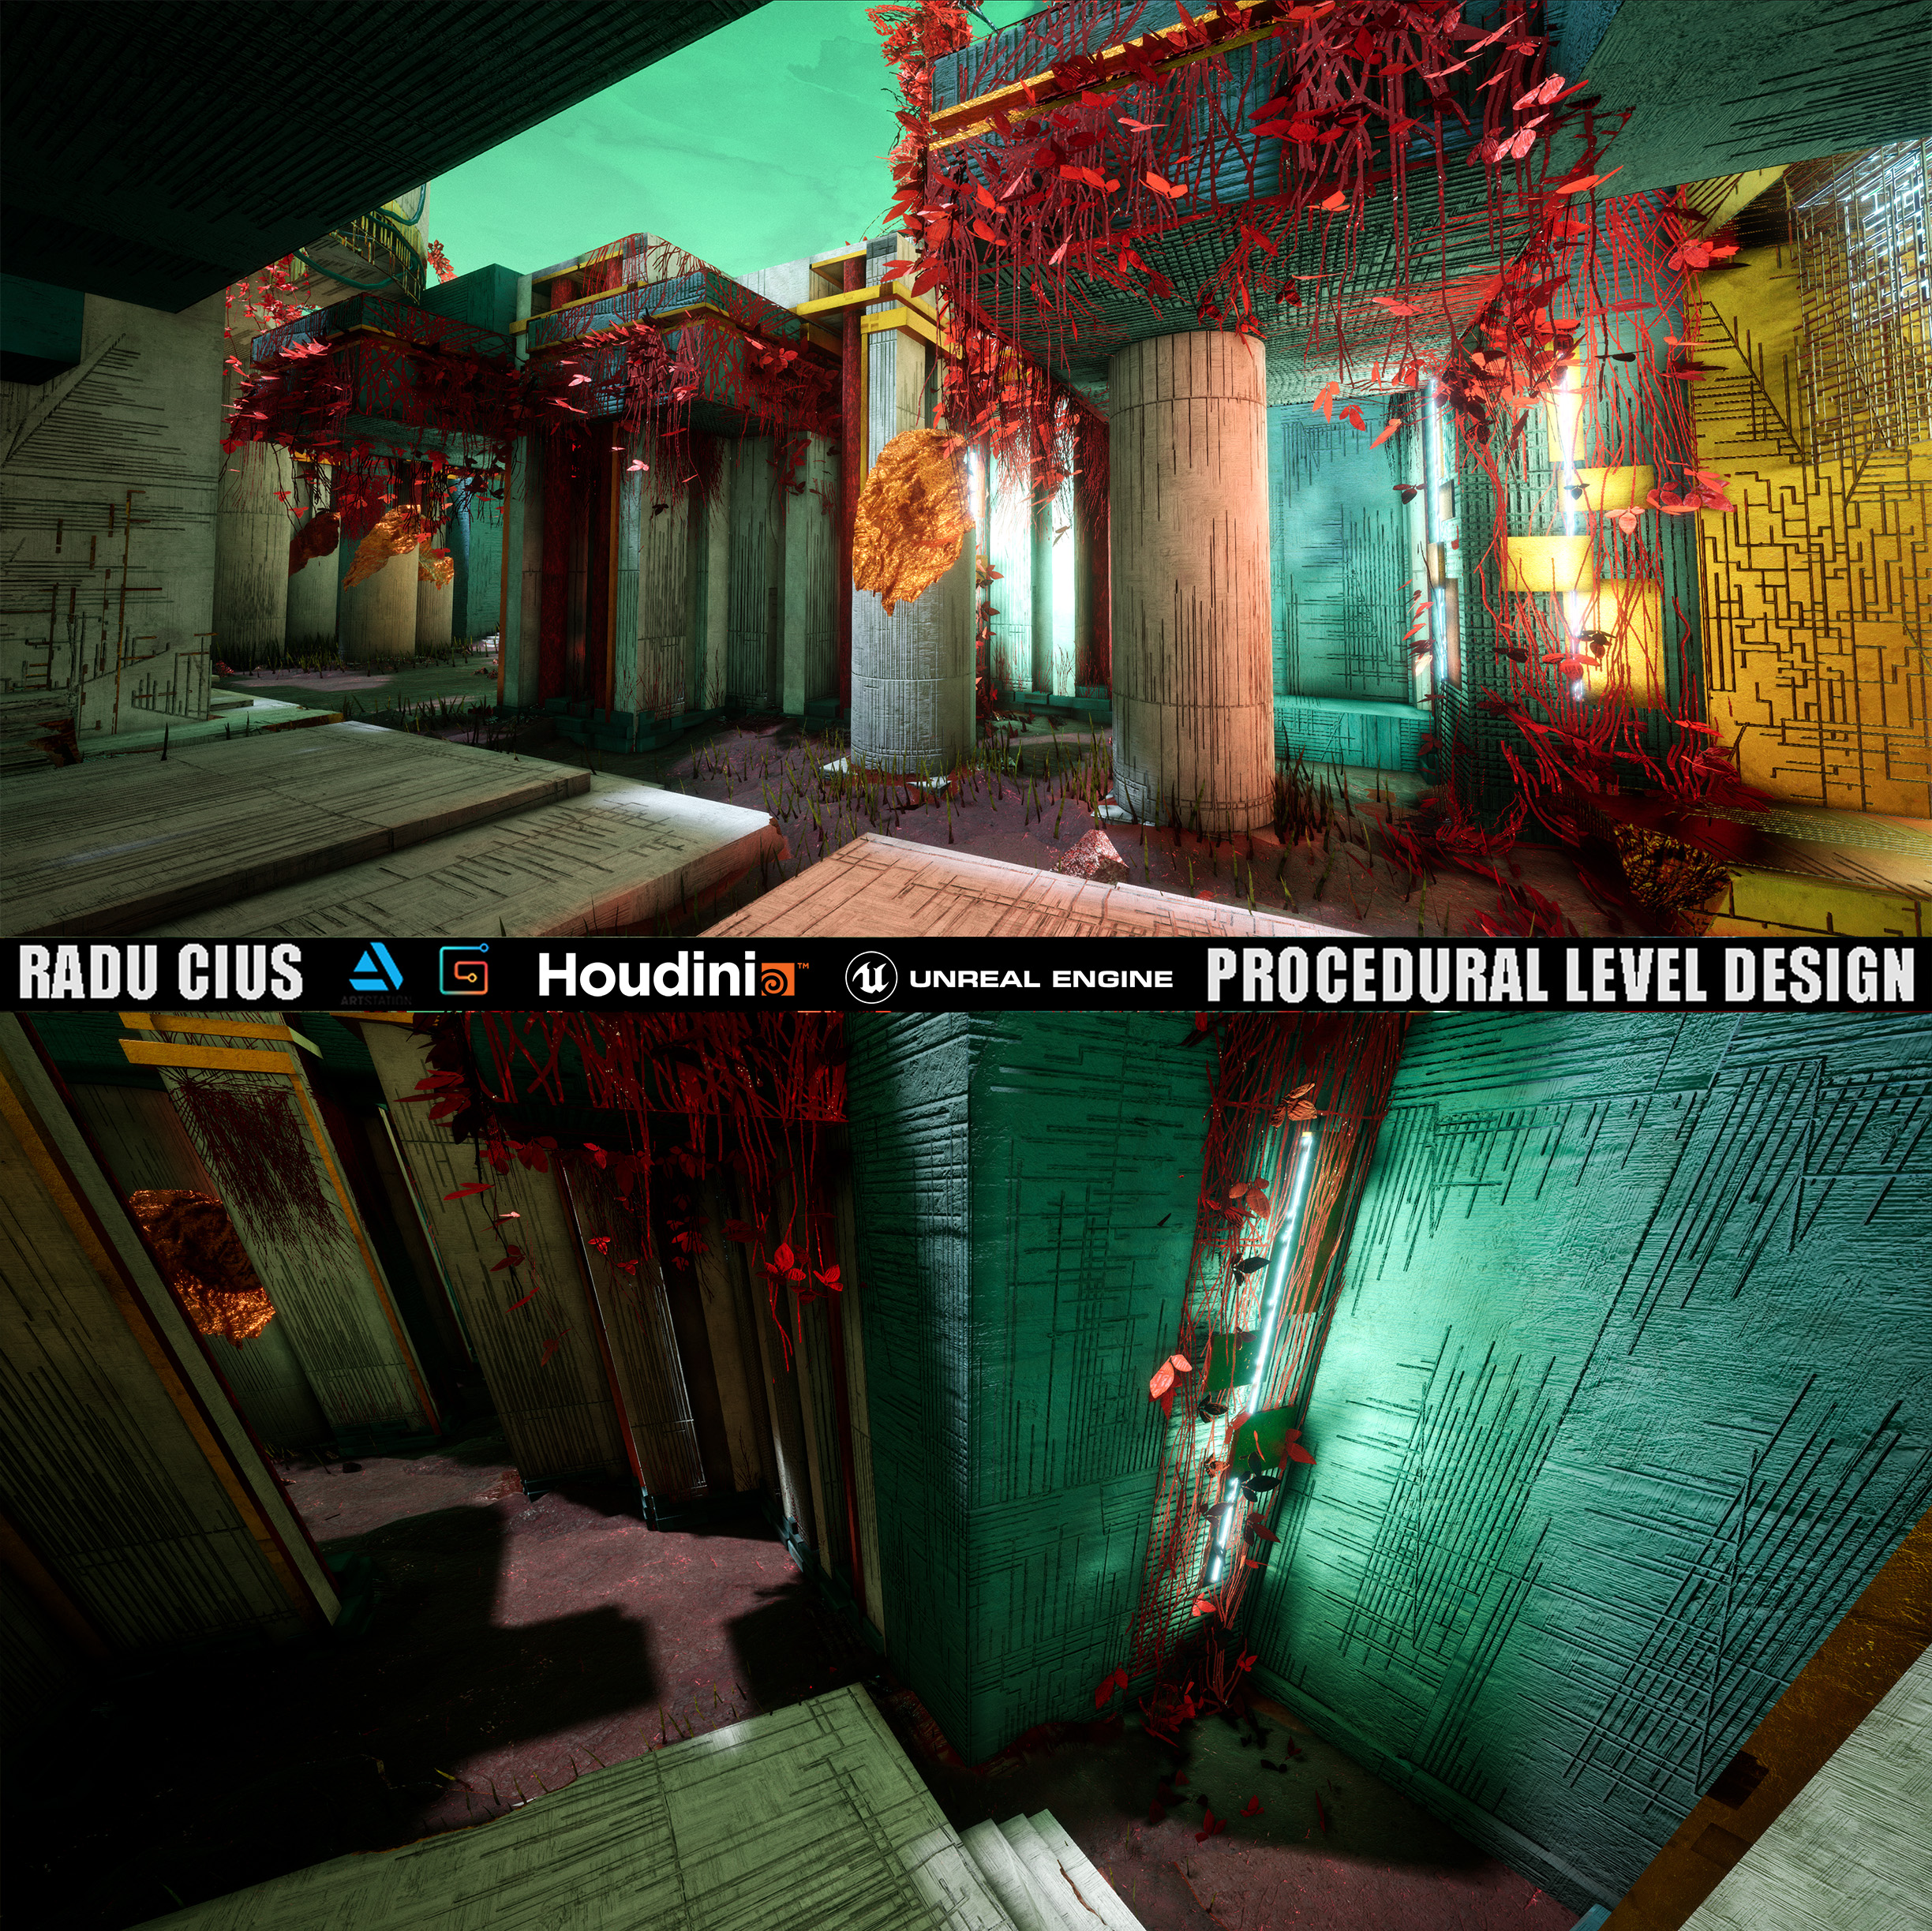 Procedural_Level_Design_3